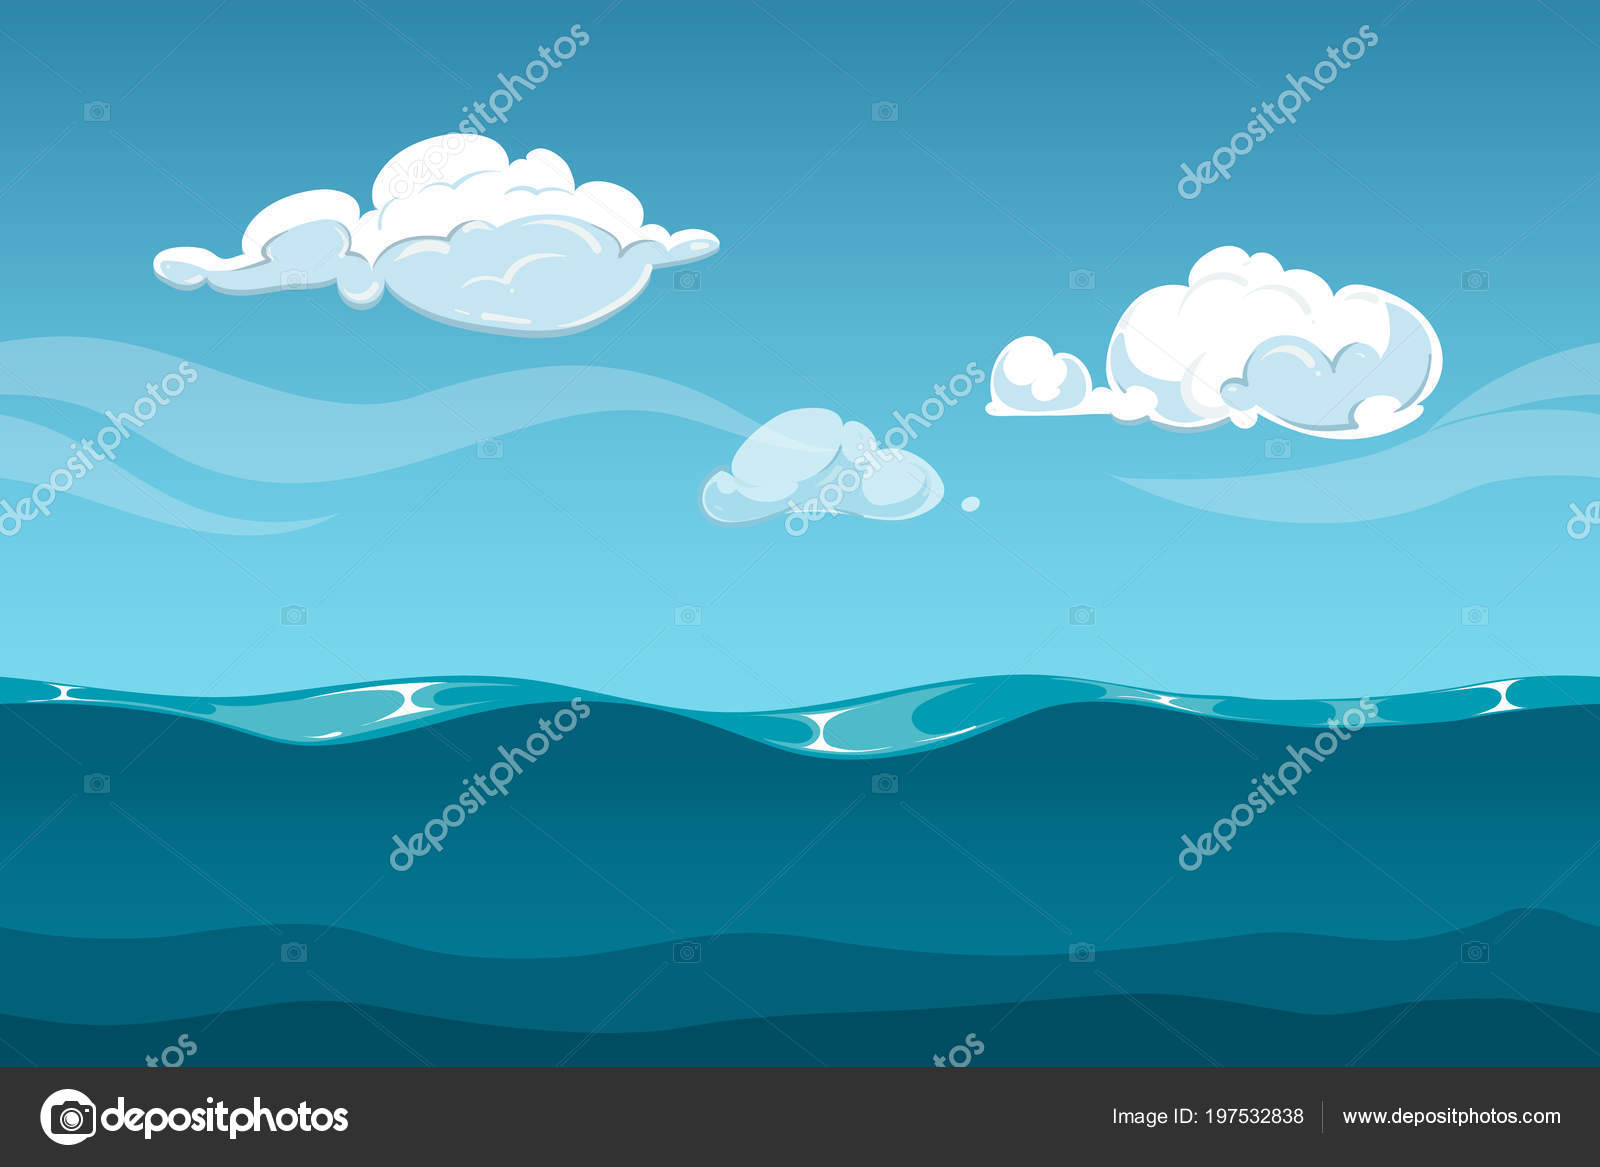 Sea Or Ocean Cartoon Landscape With Sky And Clouds Seamless